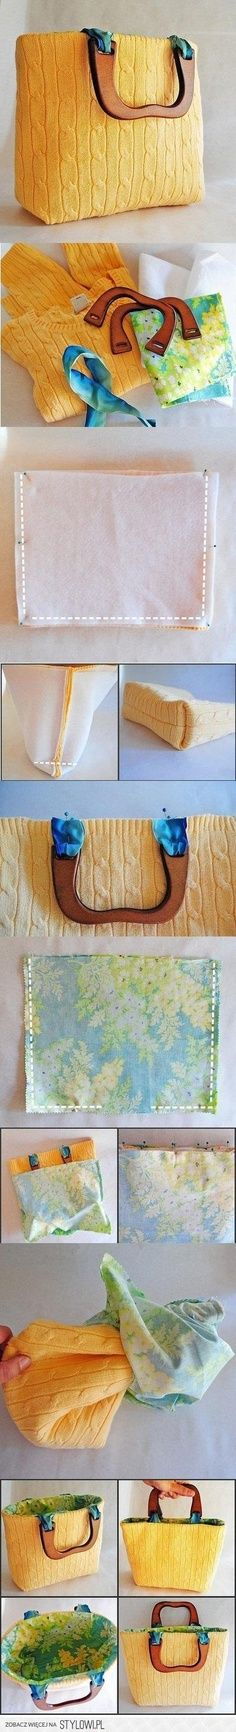 how to turn an old sweater into a shopping bag, Great!!